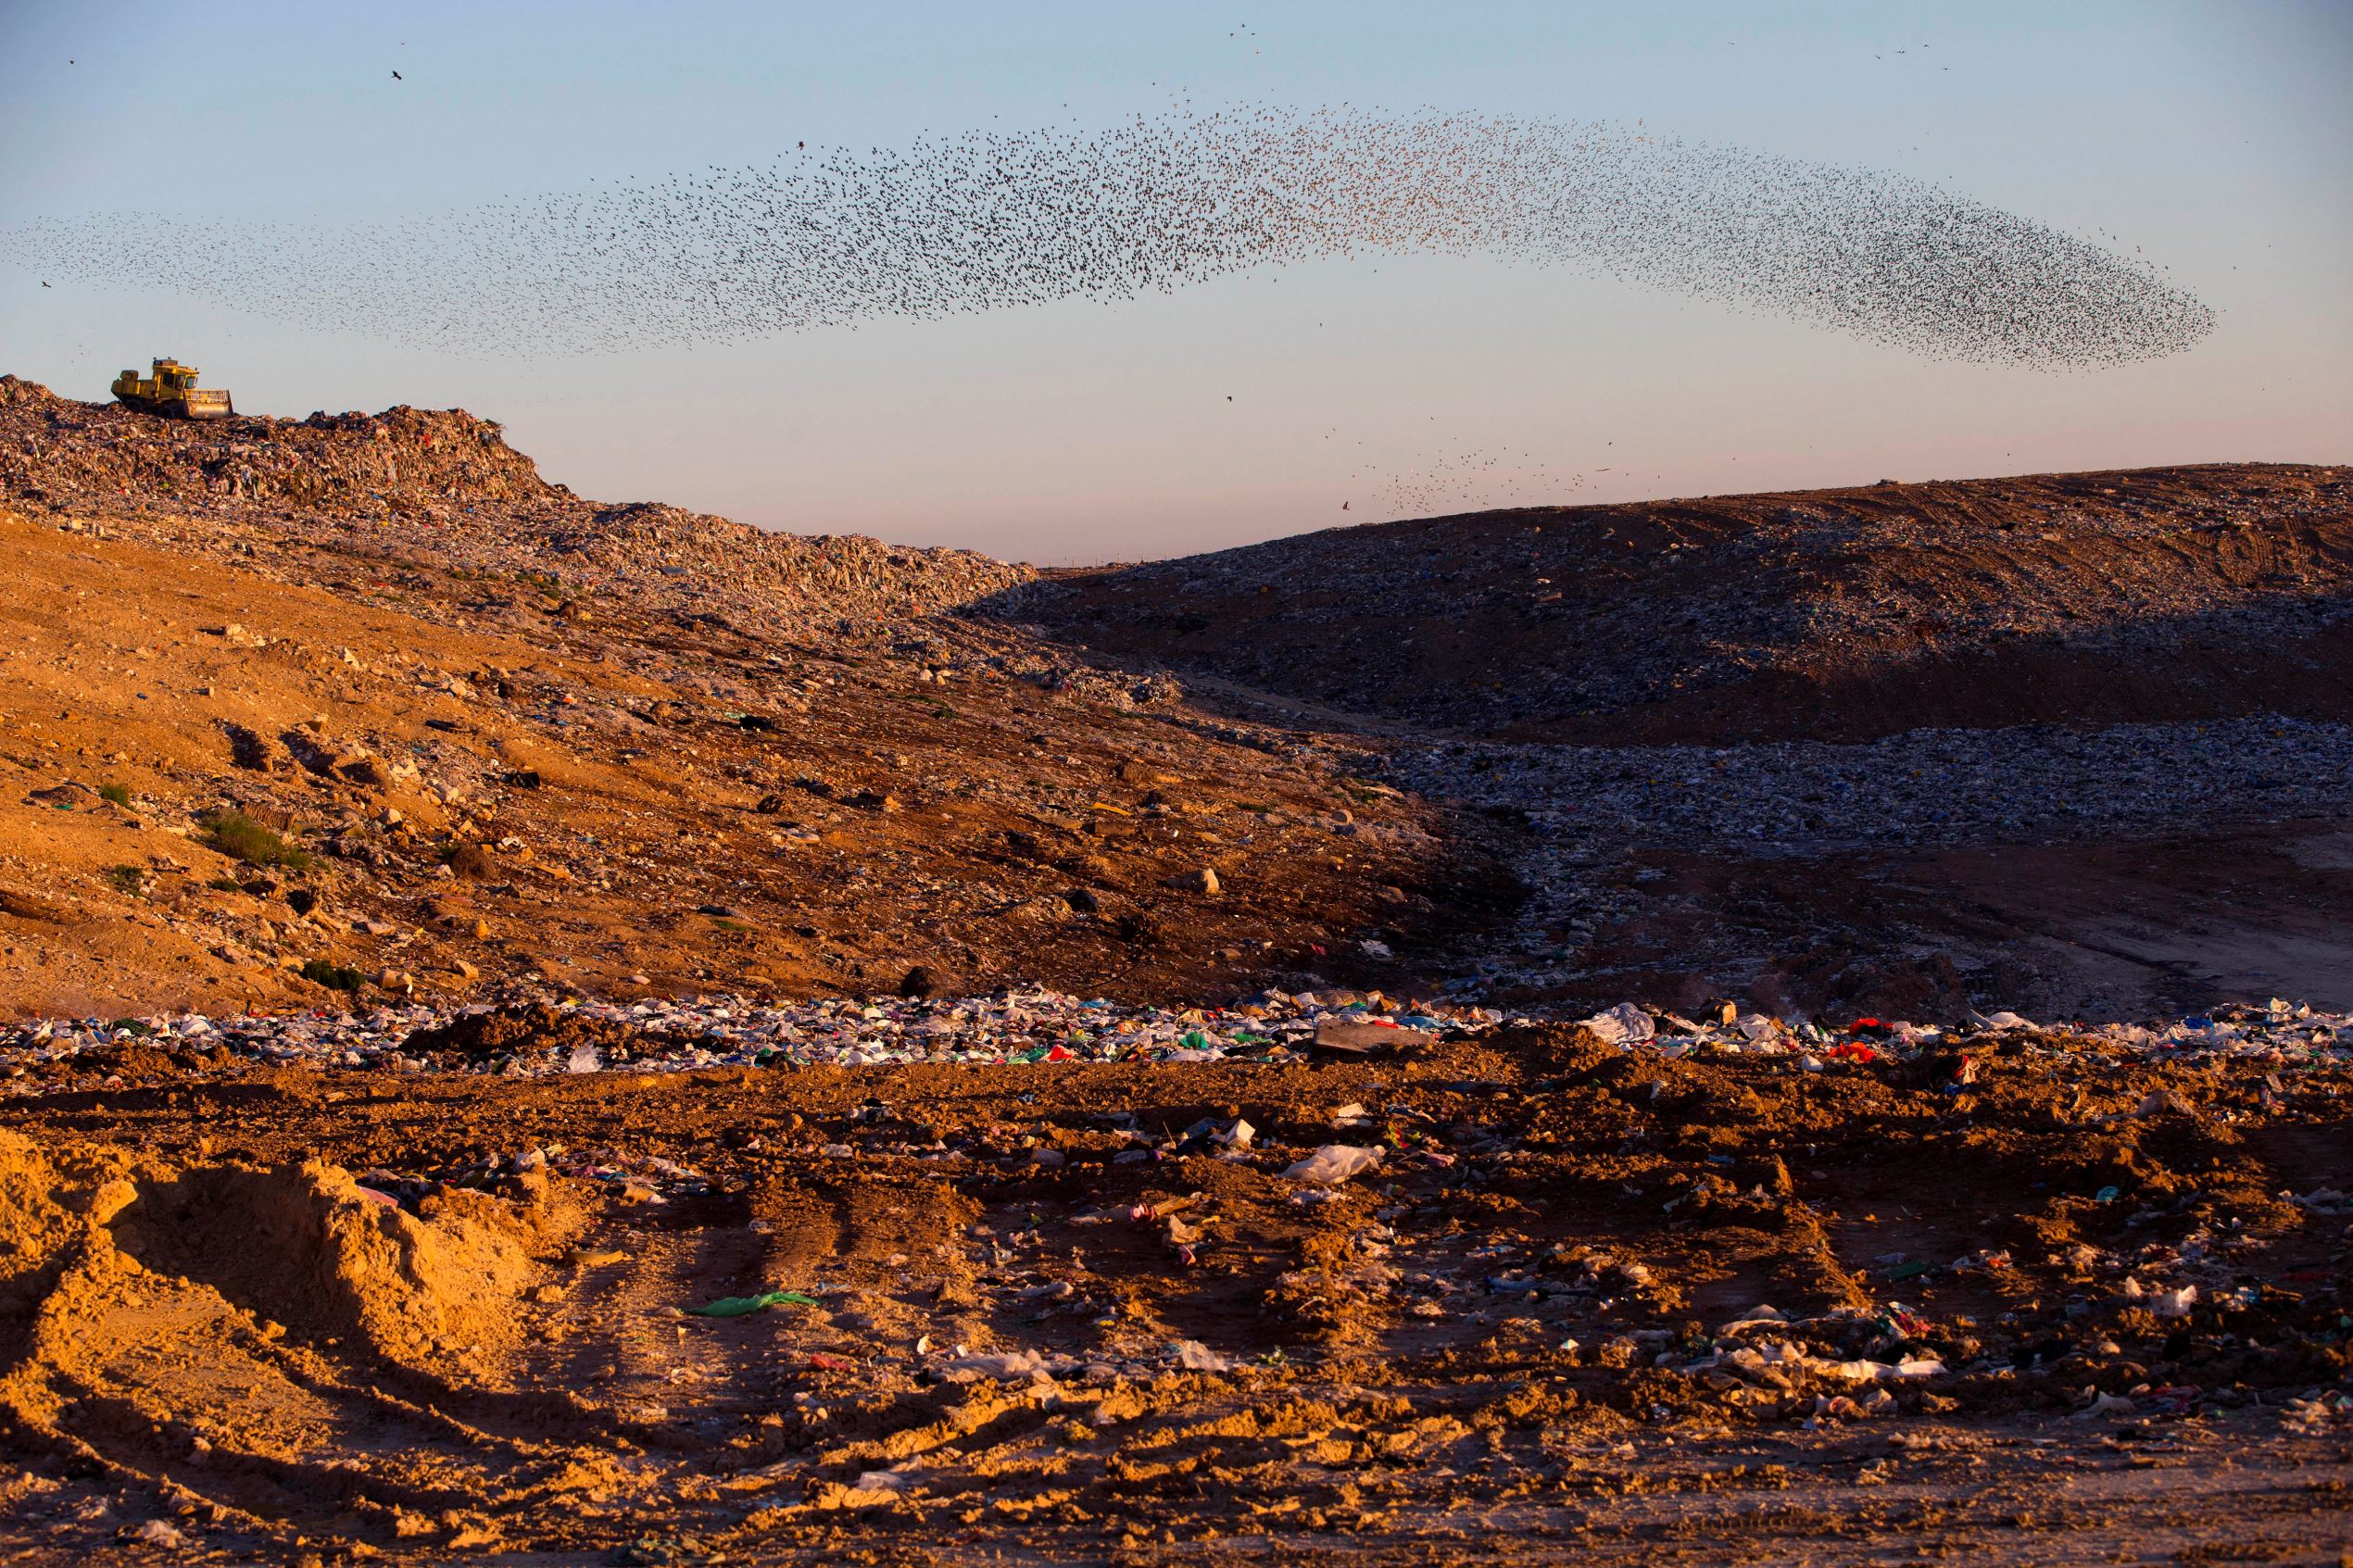 Слайд 55 из 67: A flock of migrating starlings flies over a waste dump site next to the southern Israeli Bedouin village of Rahat, Friday, Feb. 12, 2016. (AP Photo/Oded Balilty)